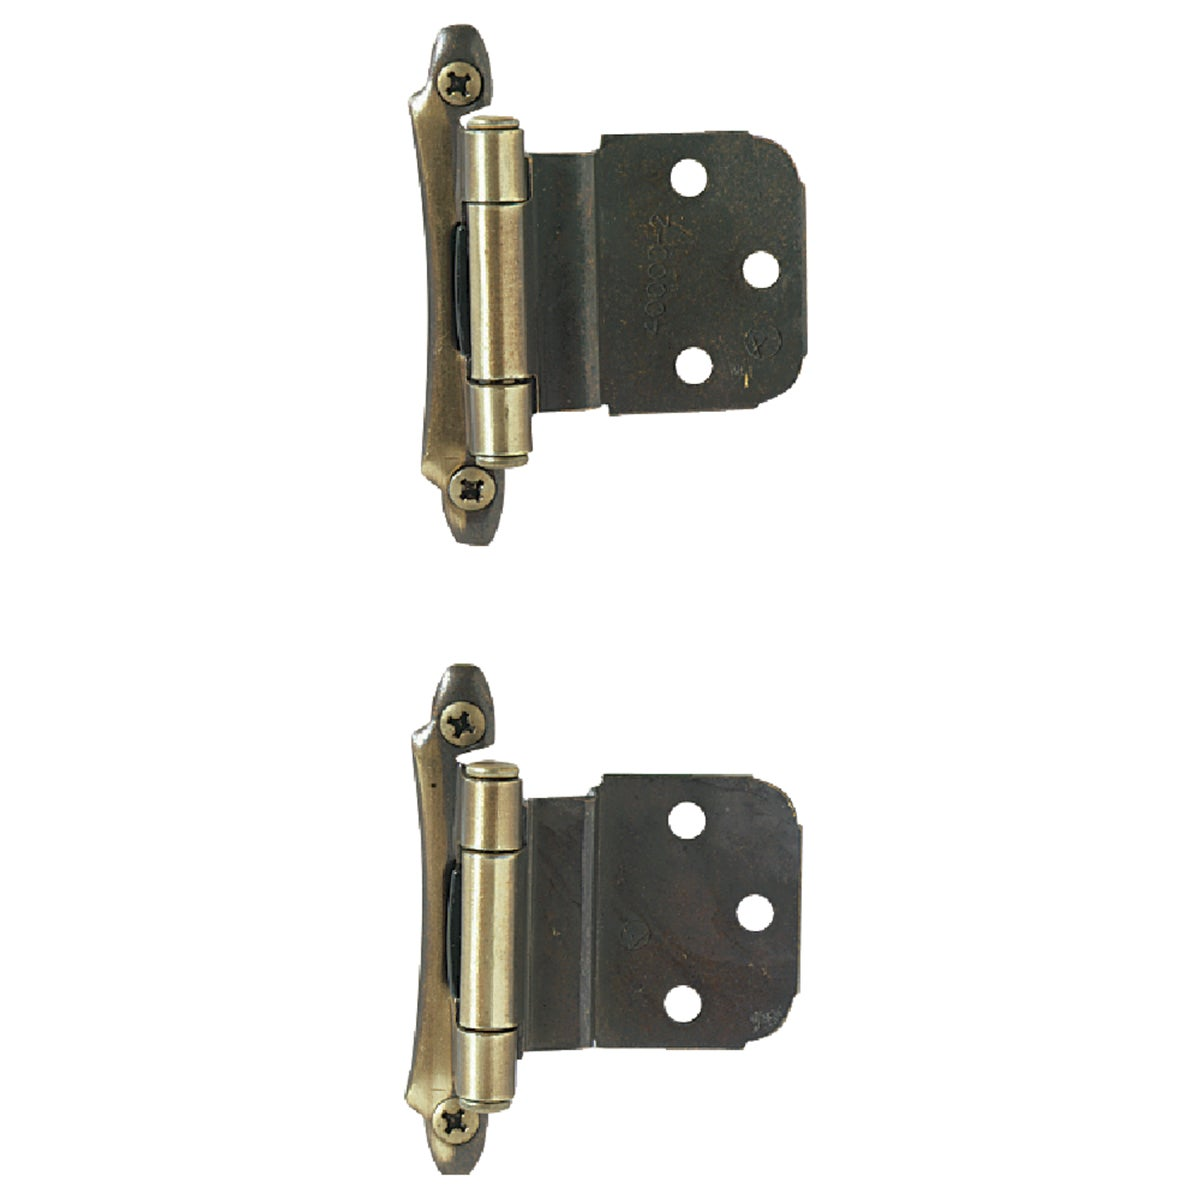 "3/8"" AE INSET HINGE - BP7928-AE by Amerock Corporation"